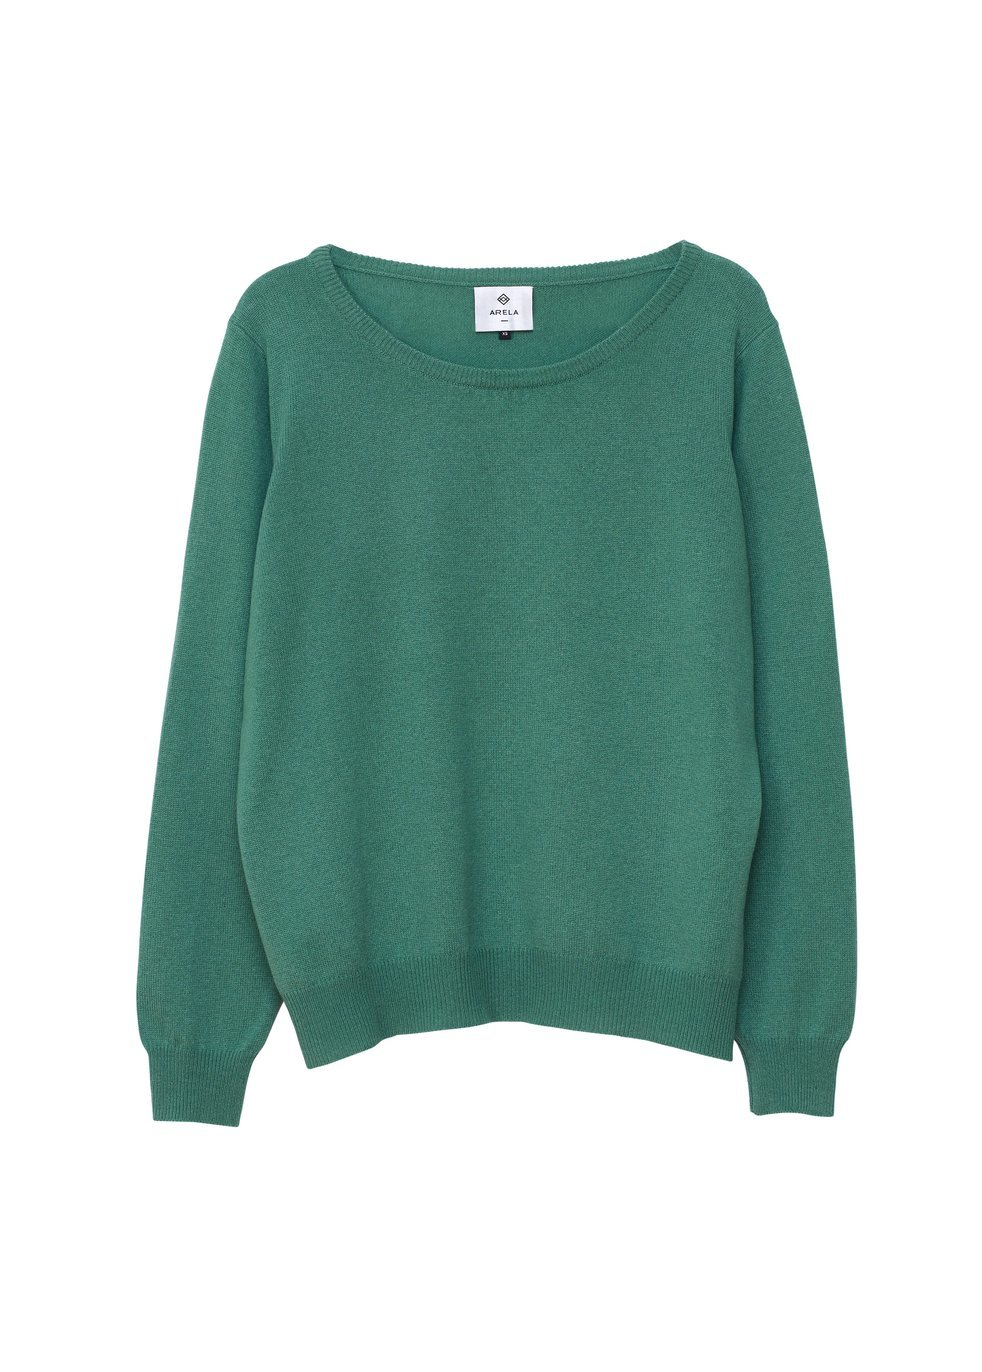 ARELA Laine Cashmere Sweater In Sage Green